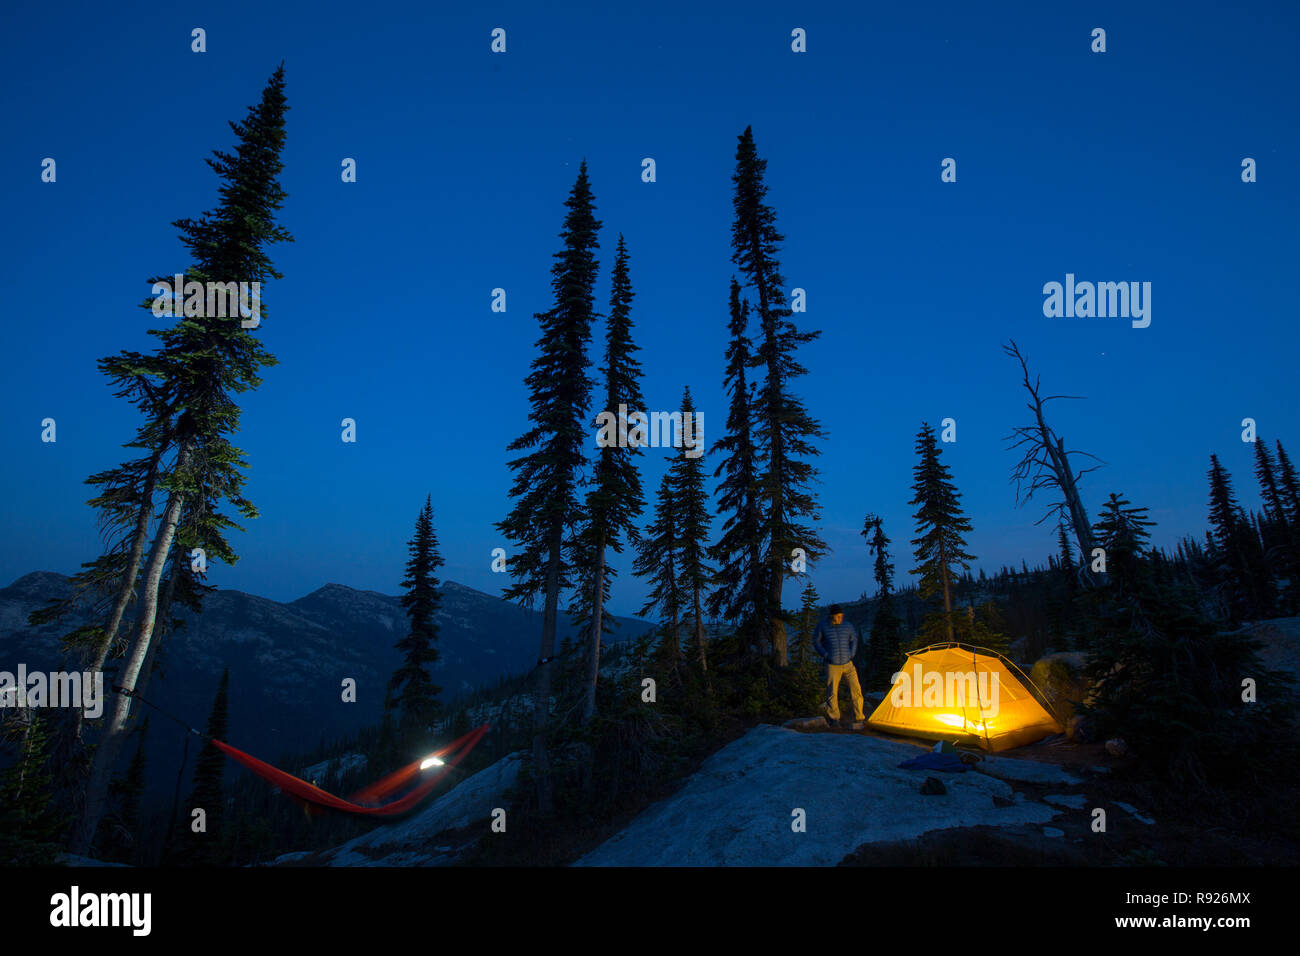 Man near a camping tent in a natural setting at night, Selkirk Mountains, Sandpoint, Idaho, USA - Stock Image